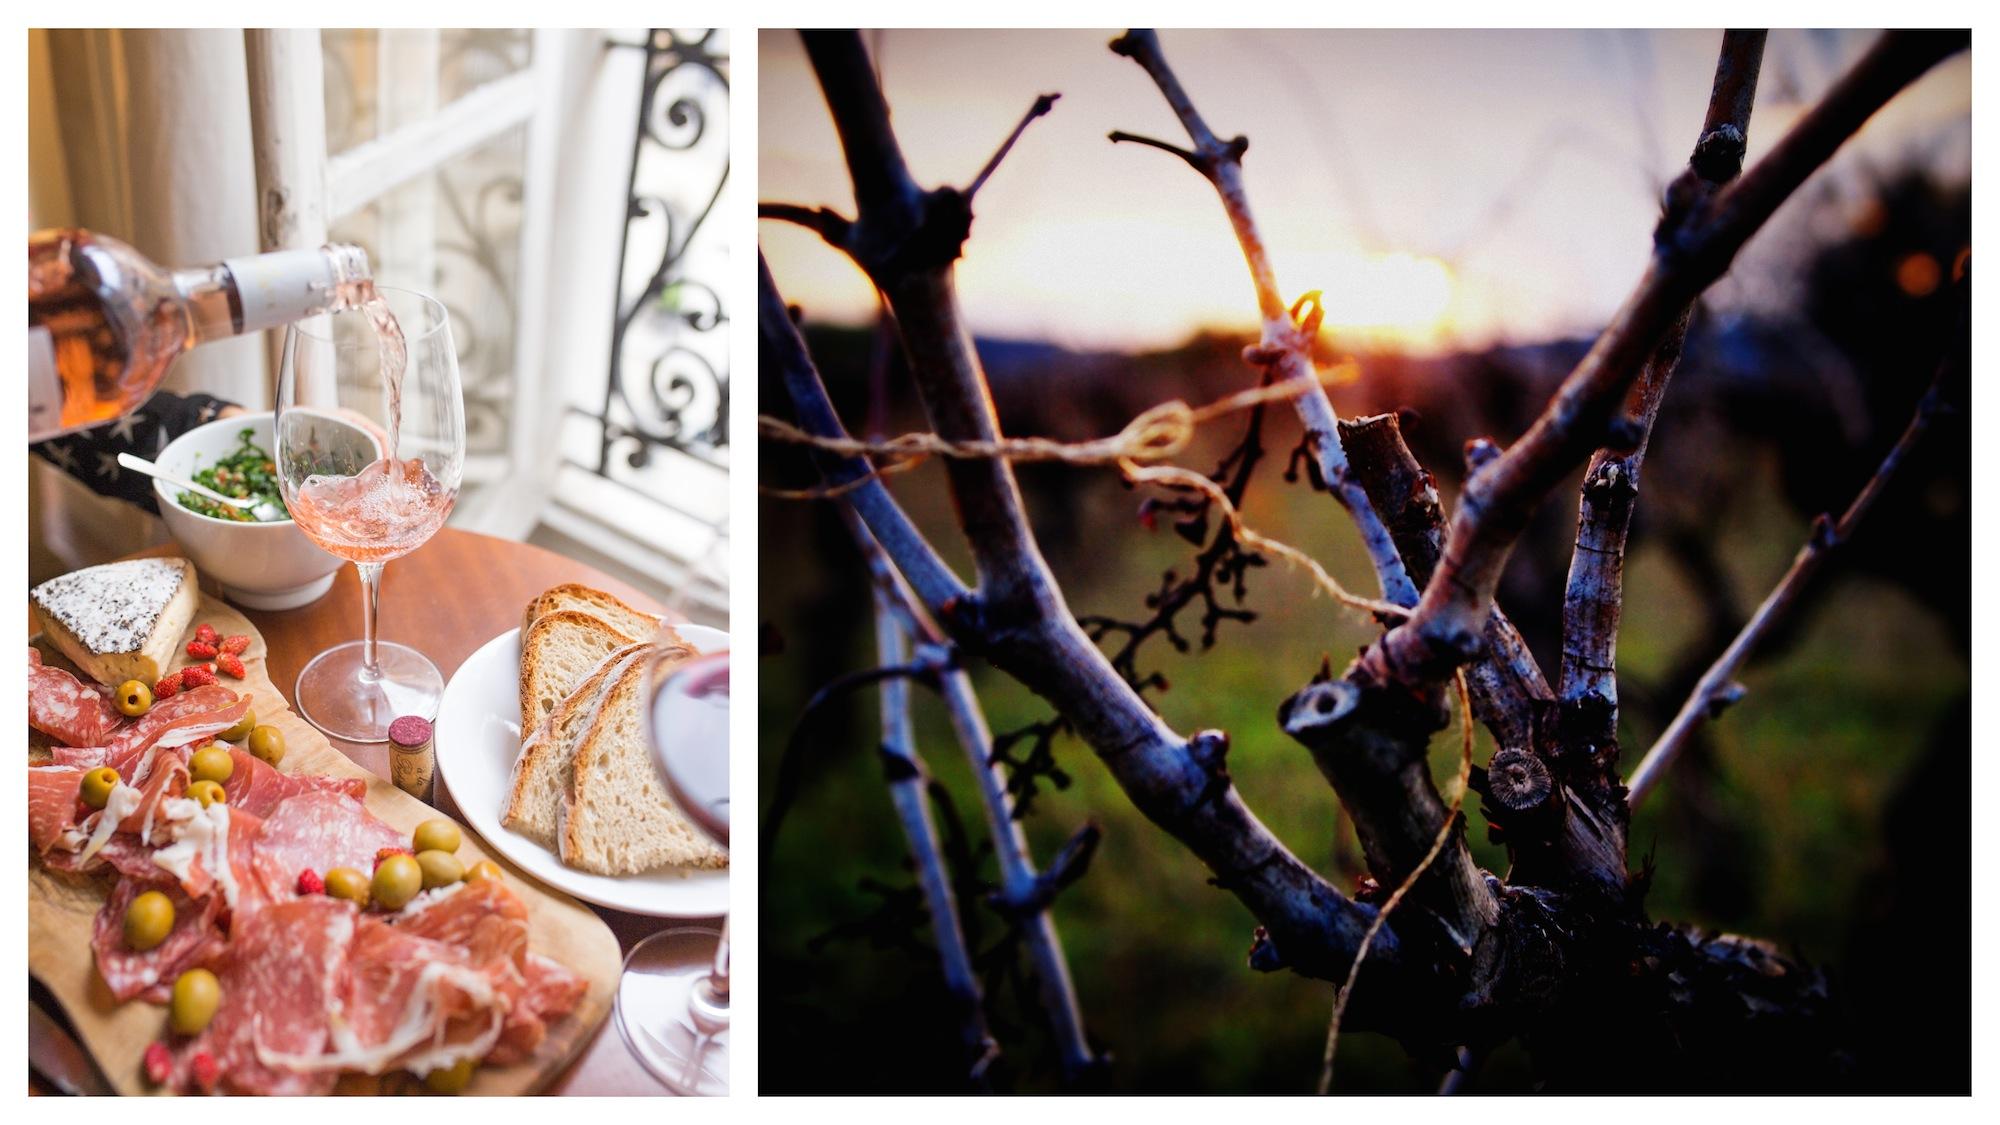 Living in the French countryside is about fresh ham and cheese aperitifs (left) and sunset walks in nature (right).